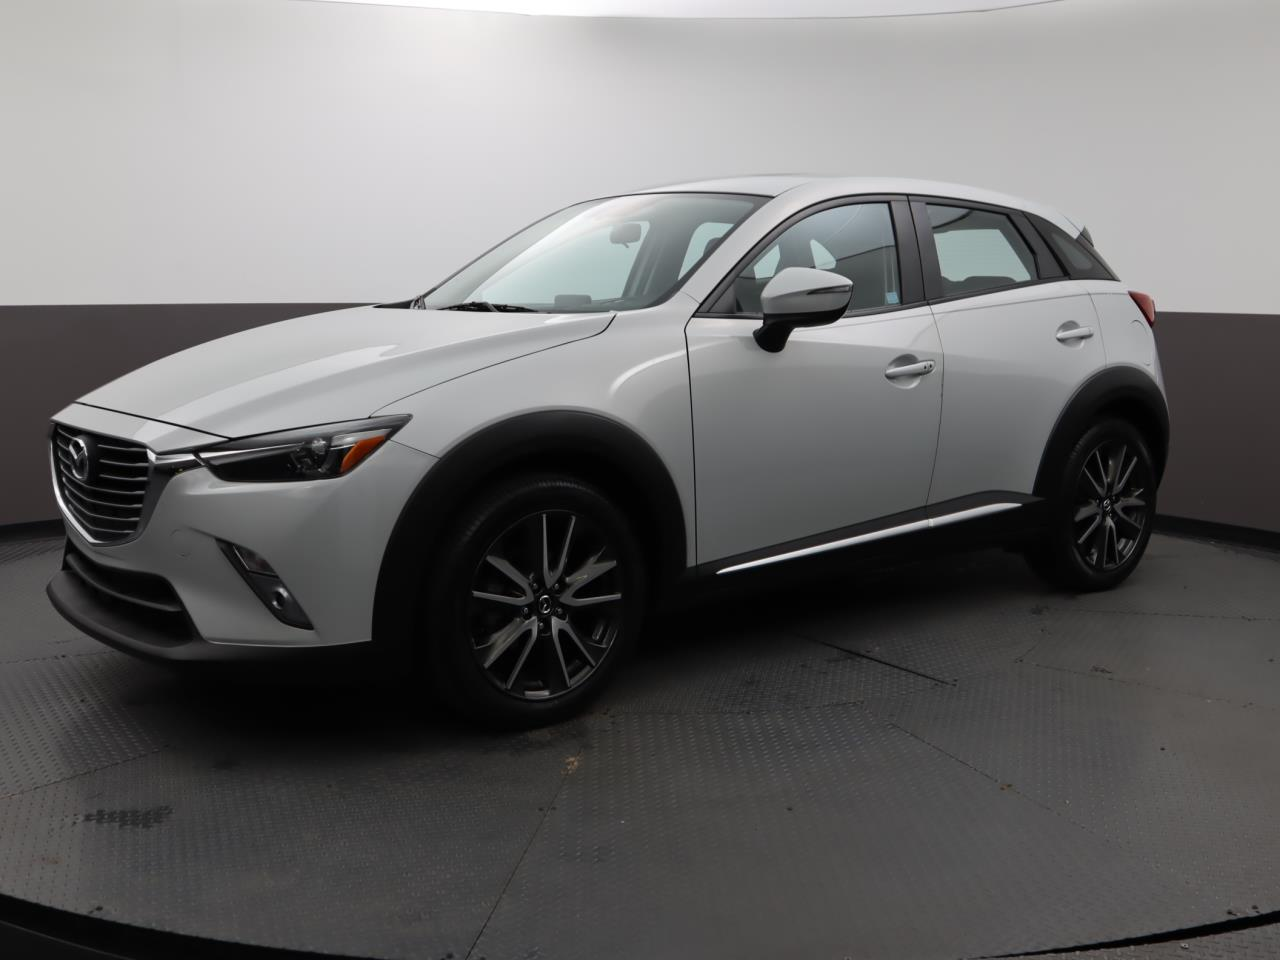 Used MAZDA CX-3 2017 MARGATE GRAND TOURING